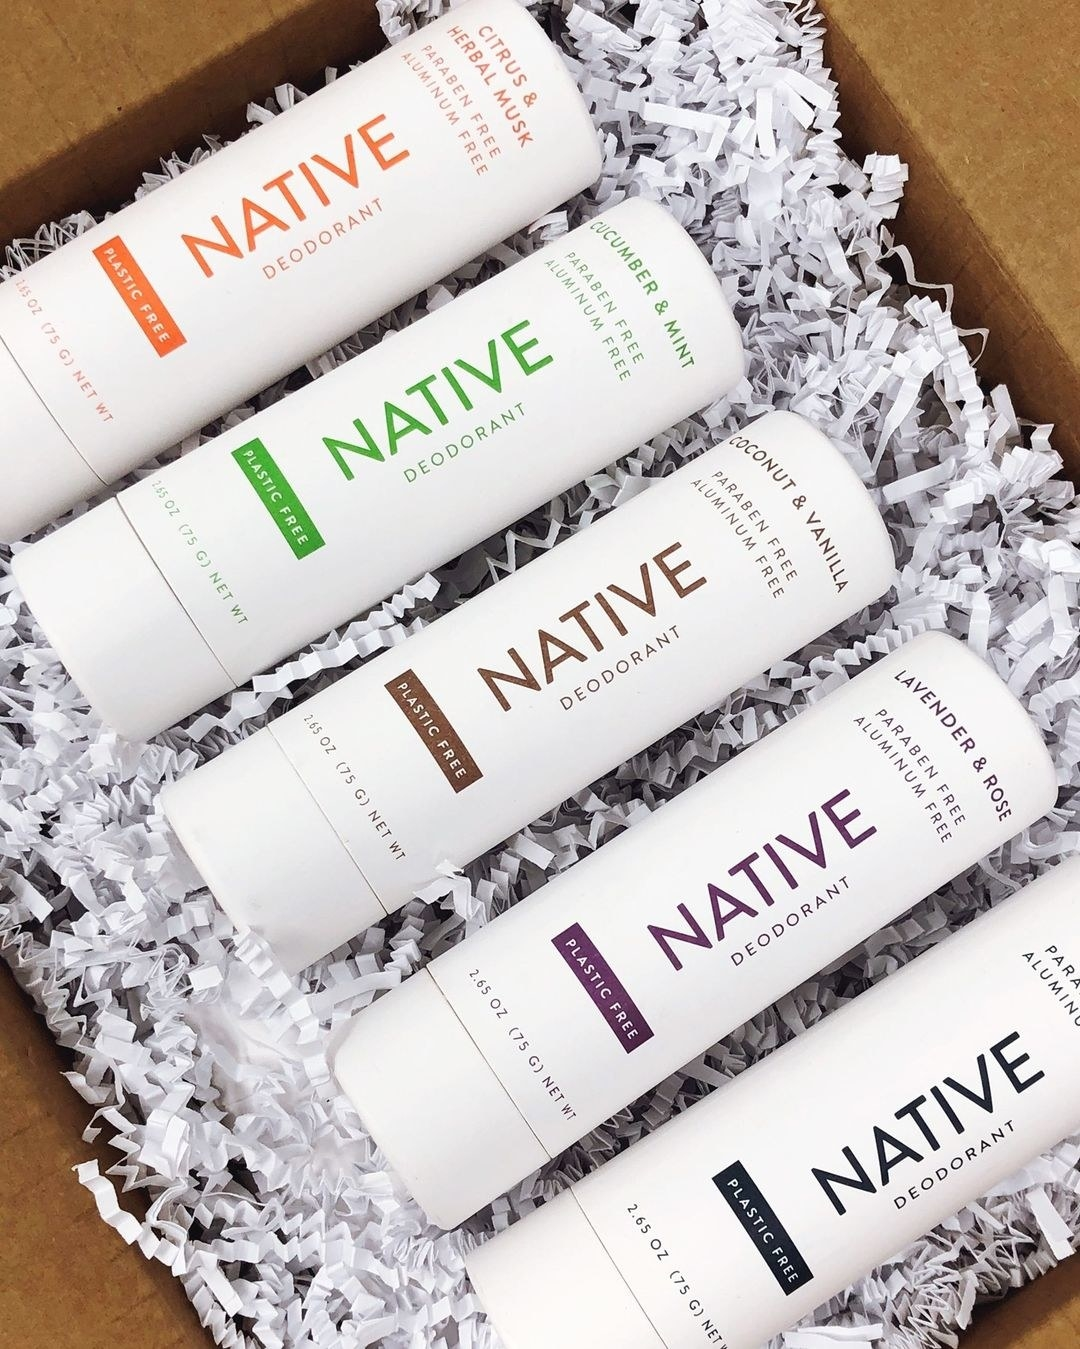 An open box filled with five Native deodorant sticks in different flavors and cardboard packaging